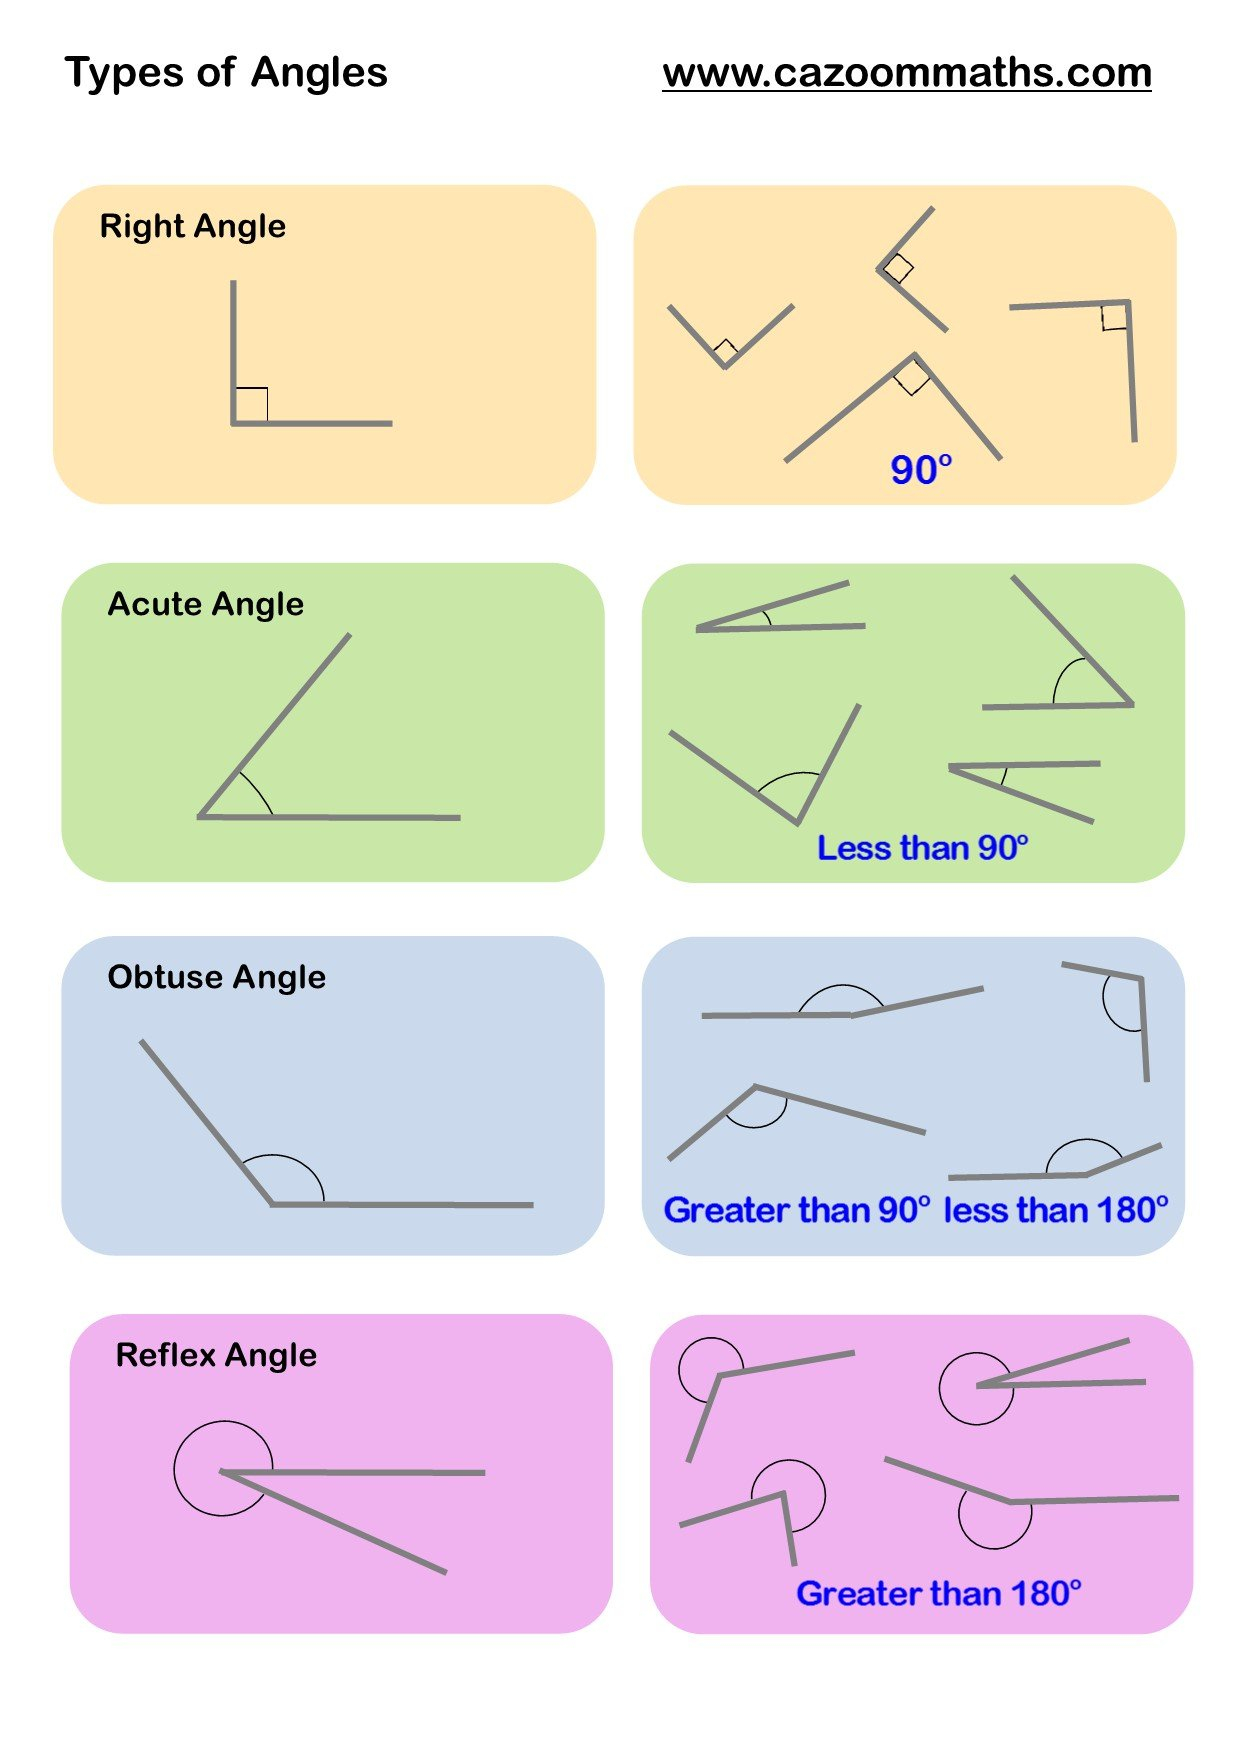 Lines And Angles Worksheets  Cazoom Maths Worksheets Inside Lines And Angles Worksheet